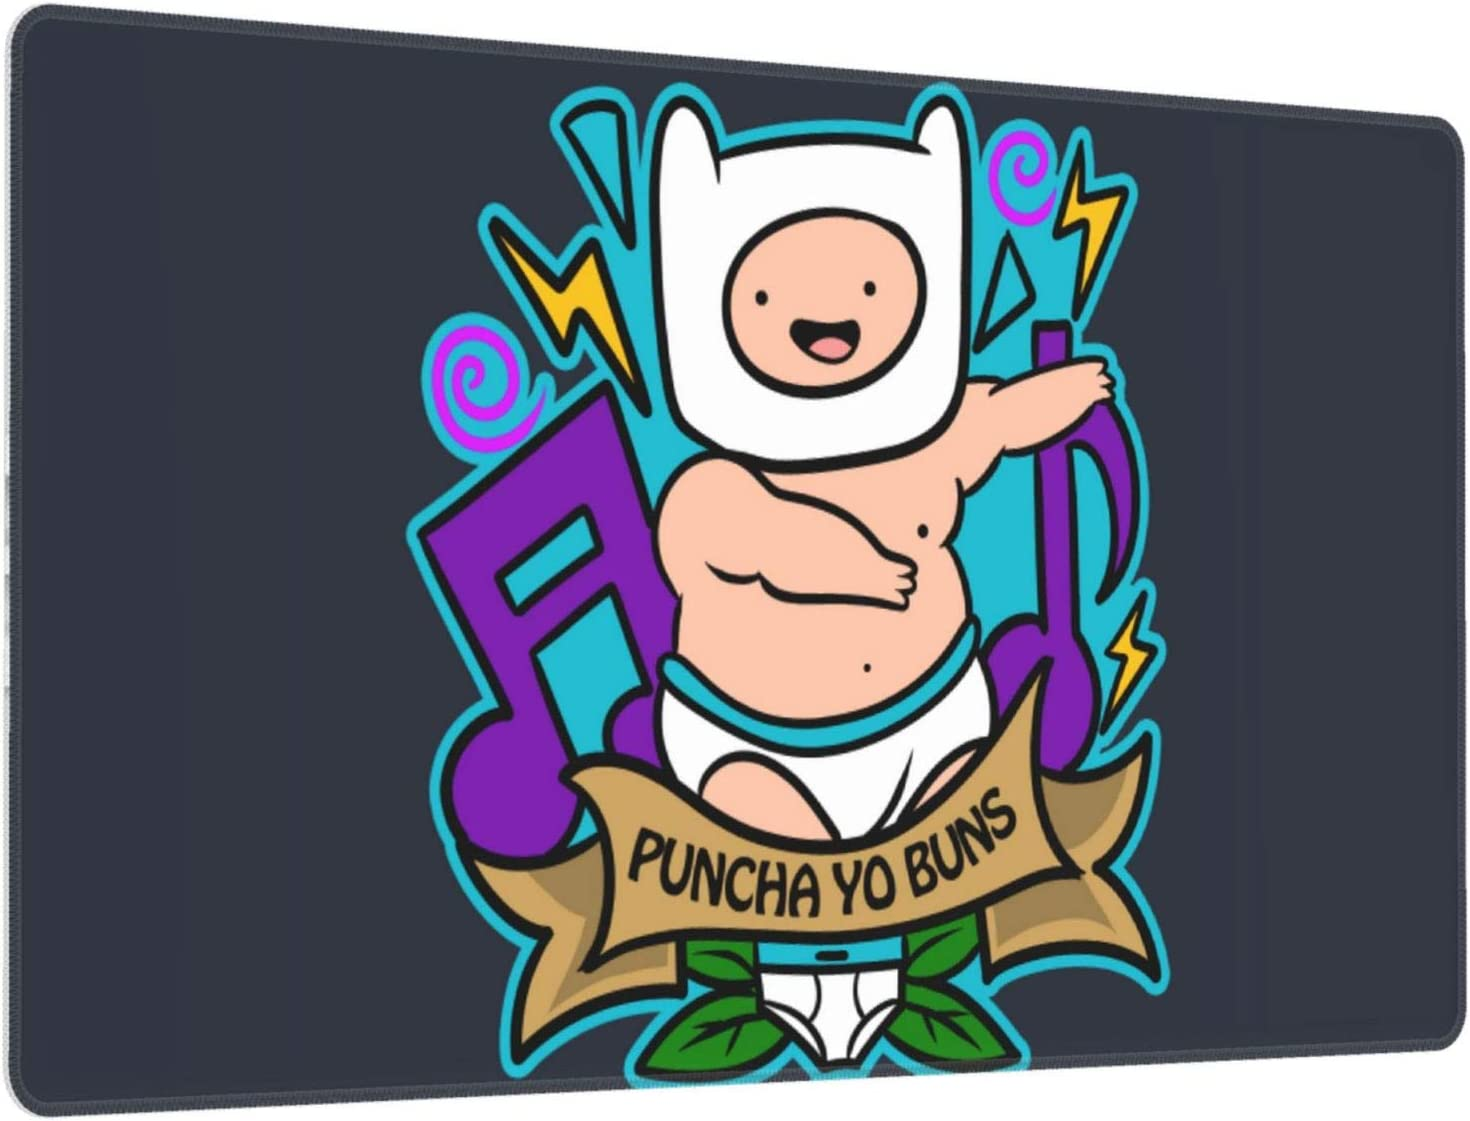 Gaming Mouse Pad Adventure Time Selling Puncha Long Buns Yo Extended S All items in the store